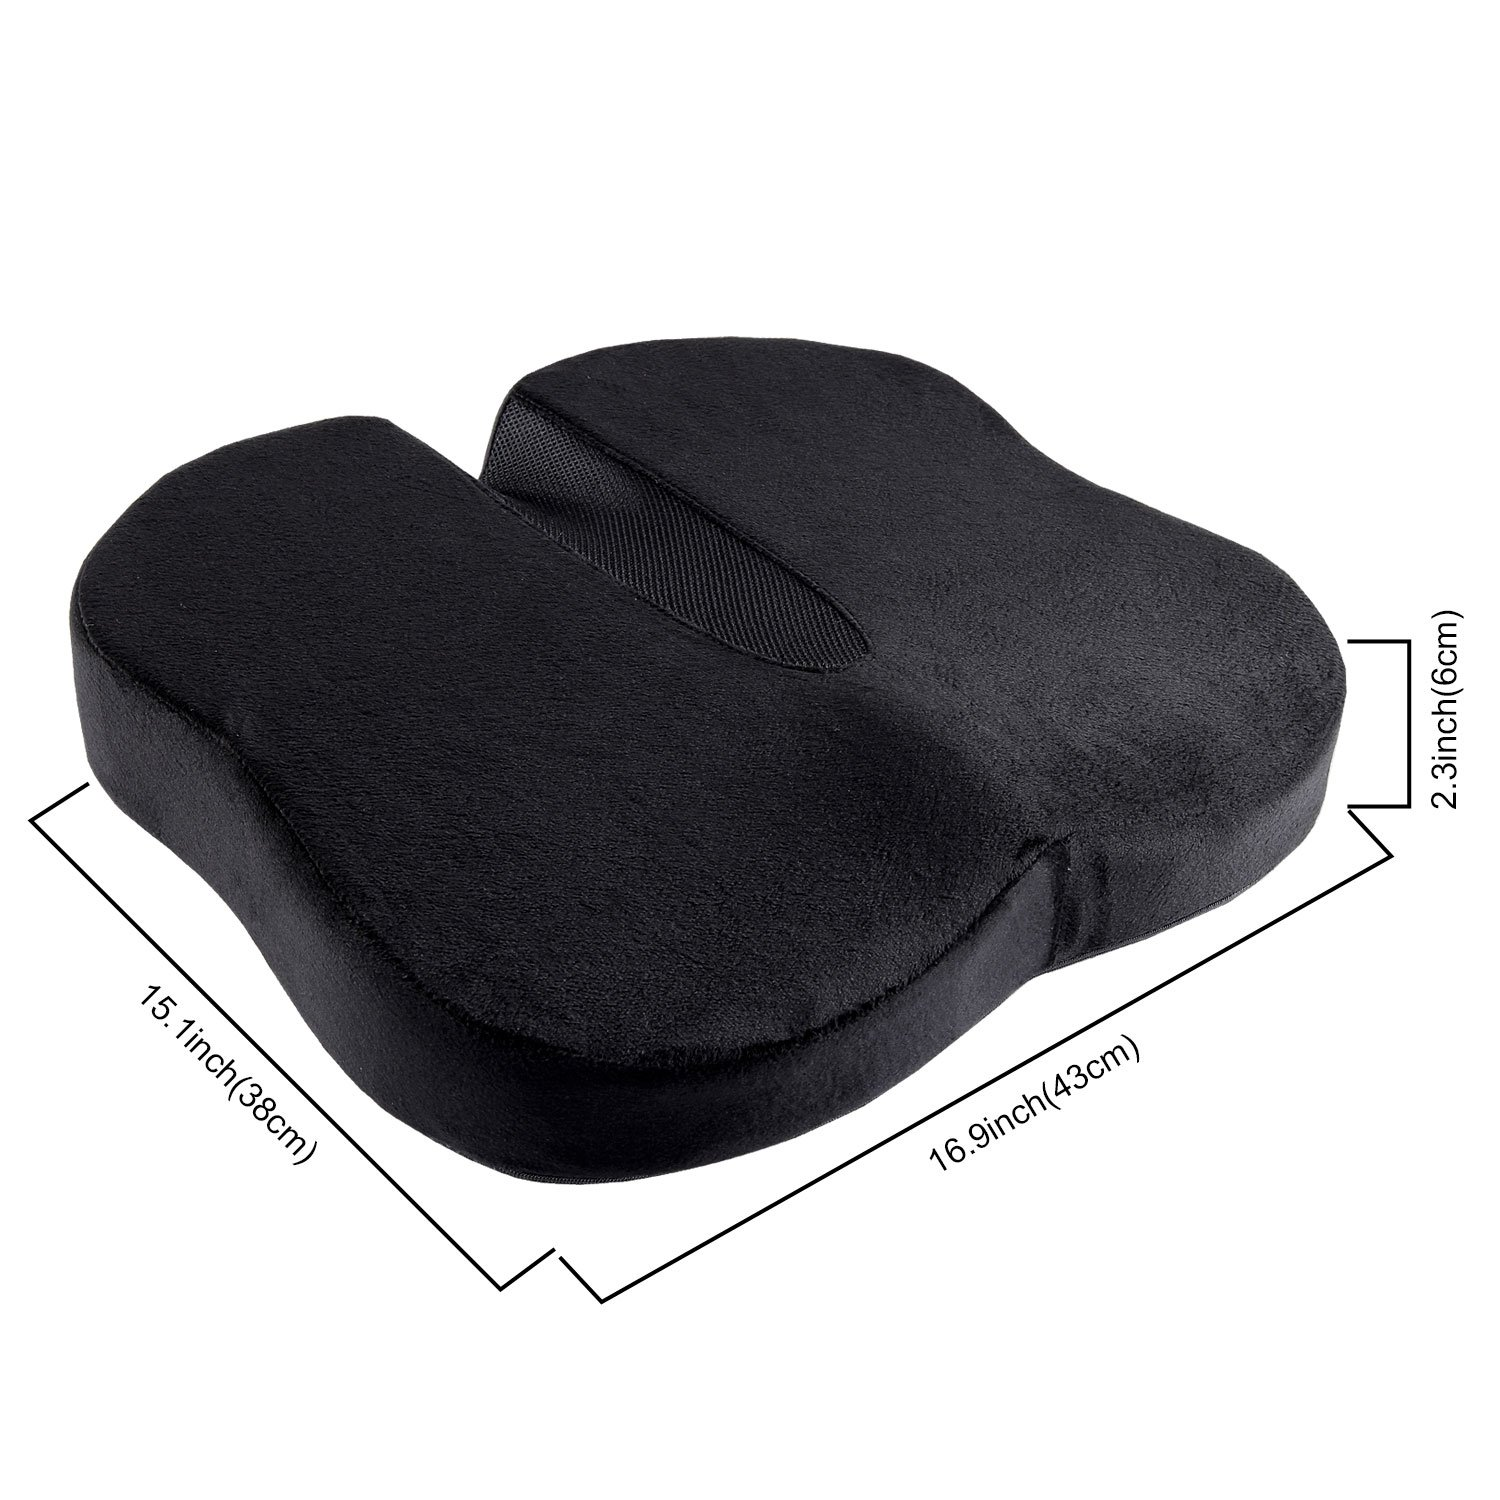 Antaprcis Seat Cushion Pure Memory Foam Confortable Luxury Seat Cushion for Relieve Back, Sciatica and Tailbone Pain - Office Chair and Car Seats Cushion by Antaprcis (Image #2)